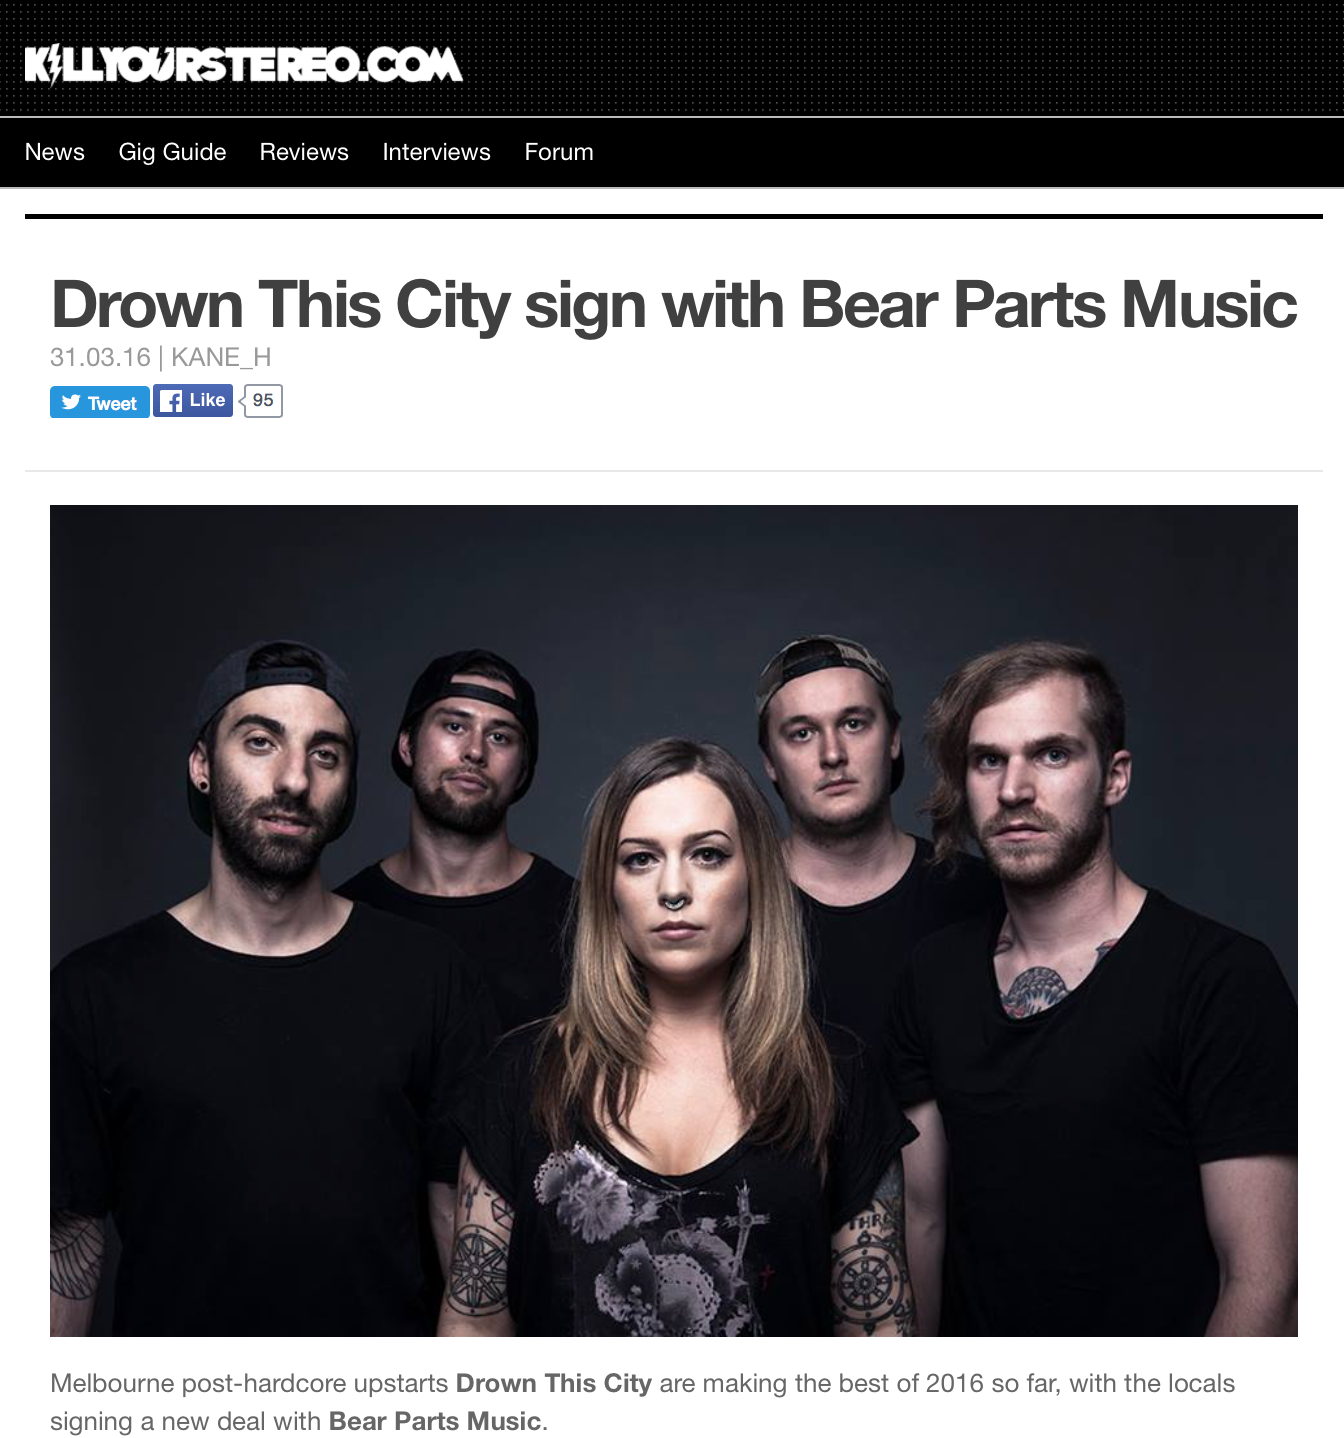 Drown This City sign with Bear Parts Music! Read the full article below via Kill Your Stereo    http://www.killyourstereo.com/news/1083082/drown-this-city-sign-with-bear-parts-music